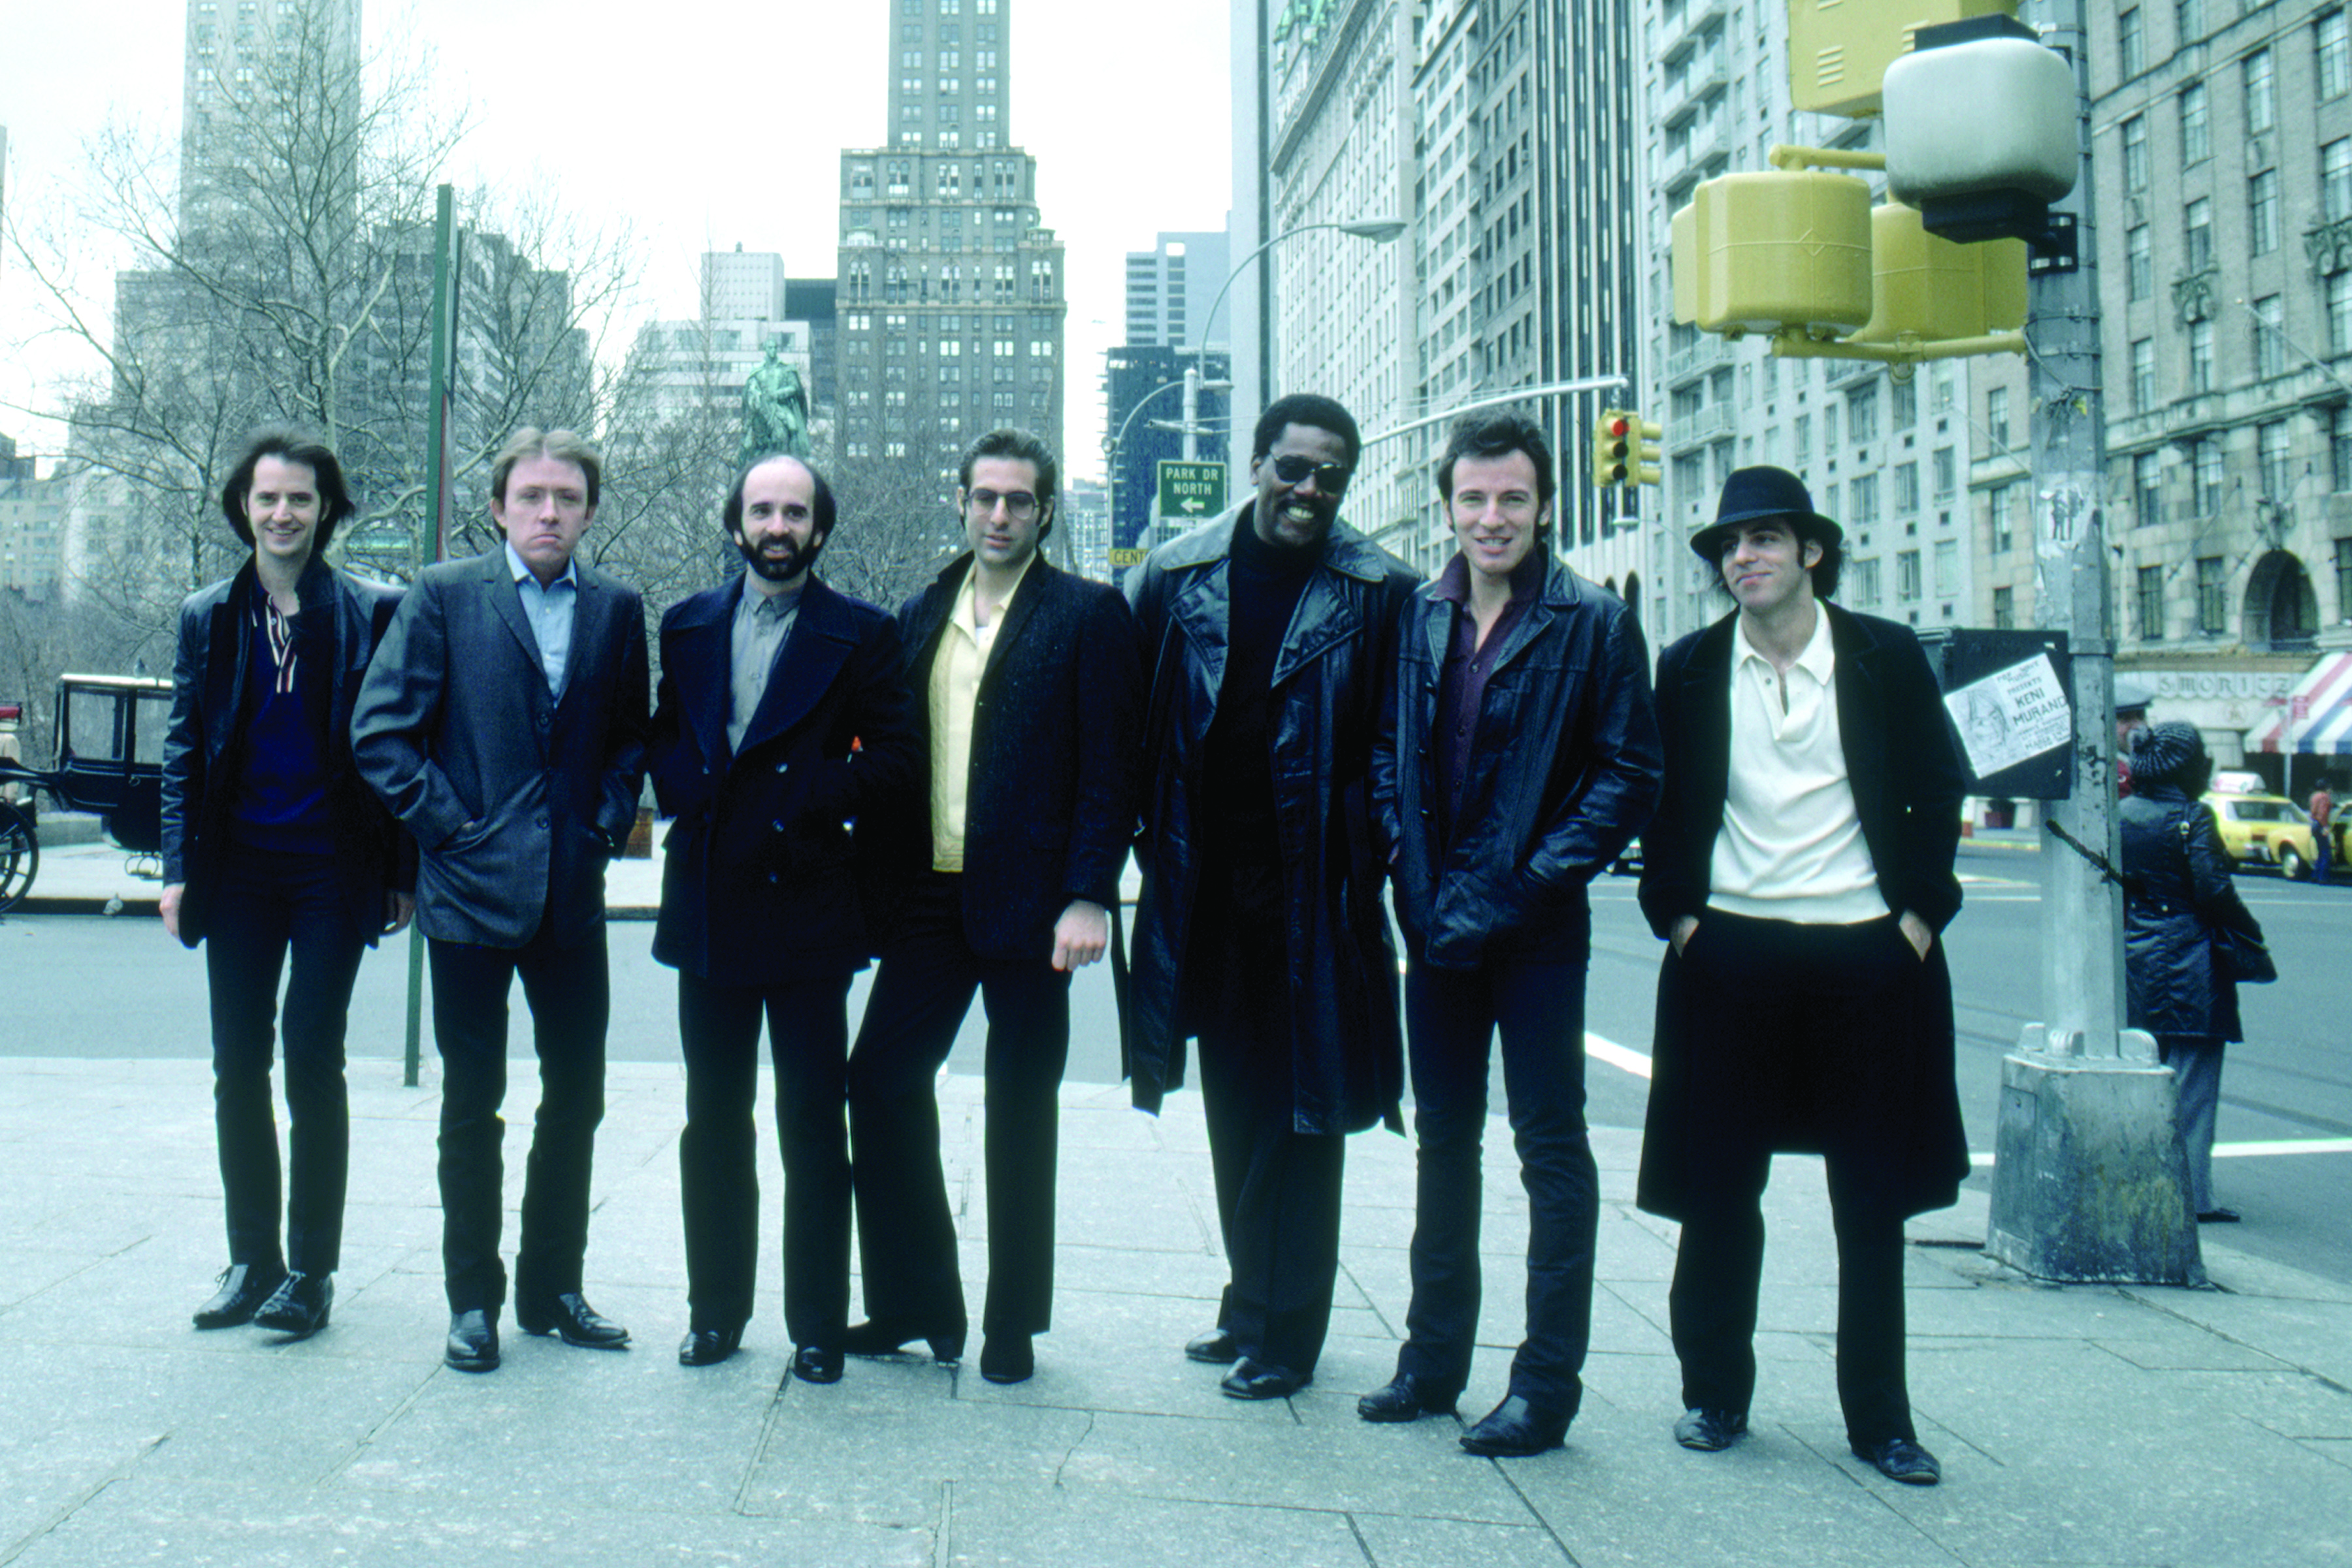 Bruce Springsteen & The E Street Band are seen in this rare photo near Central Park in New York City, March 1980.